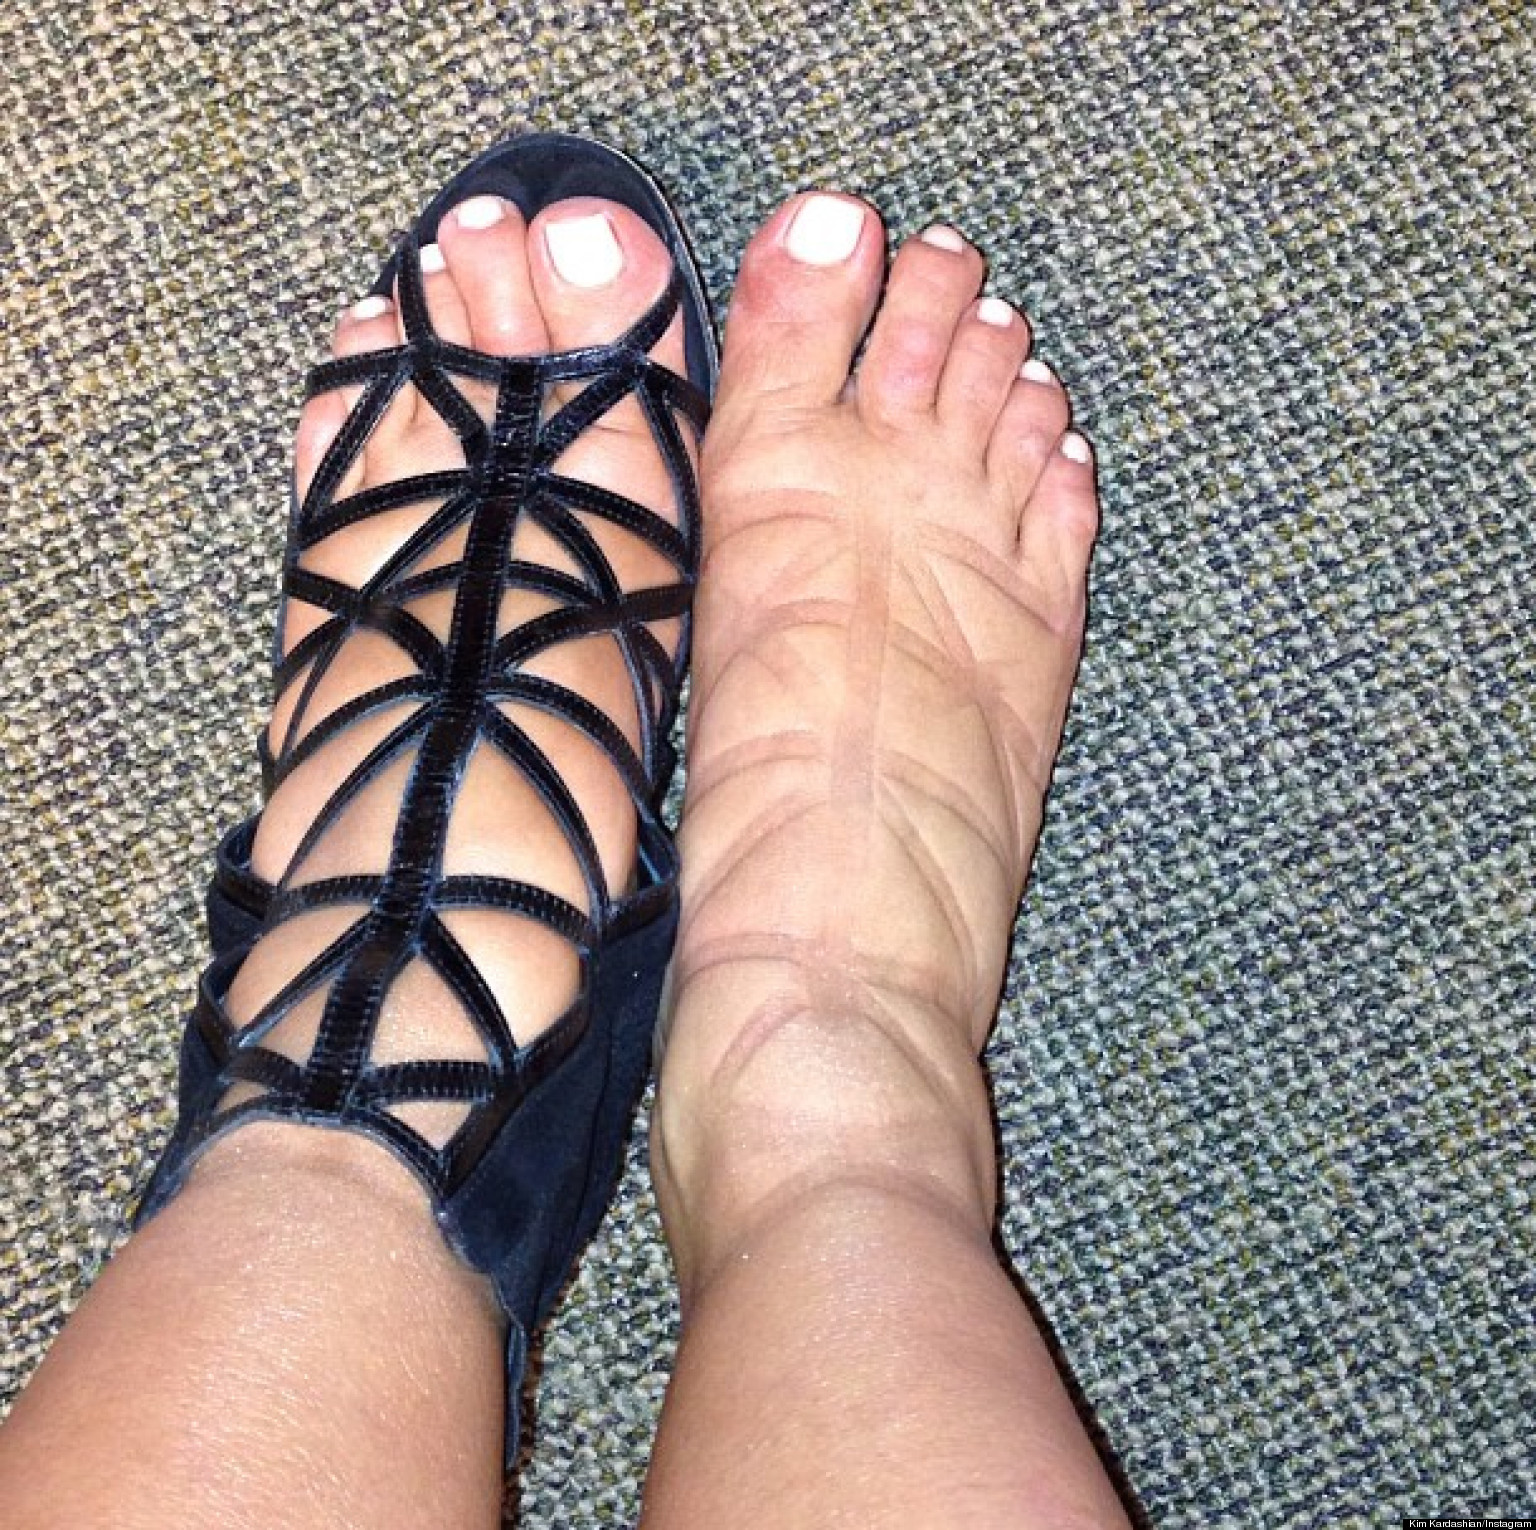 Pregnant Kim Kardashian Shares Photo Of Her Swollen Feet